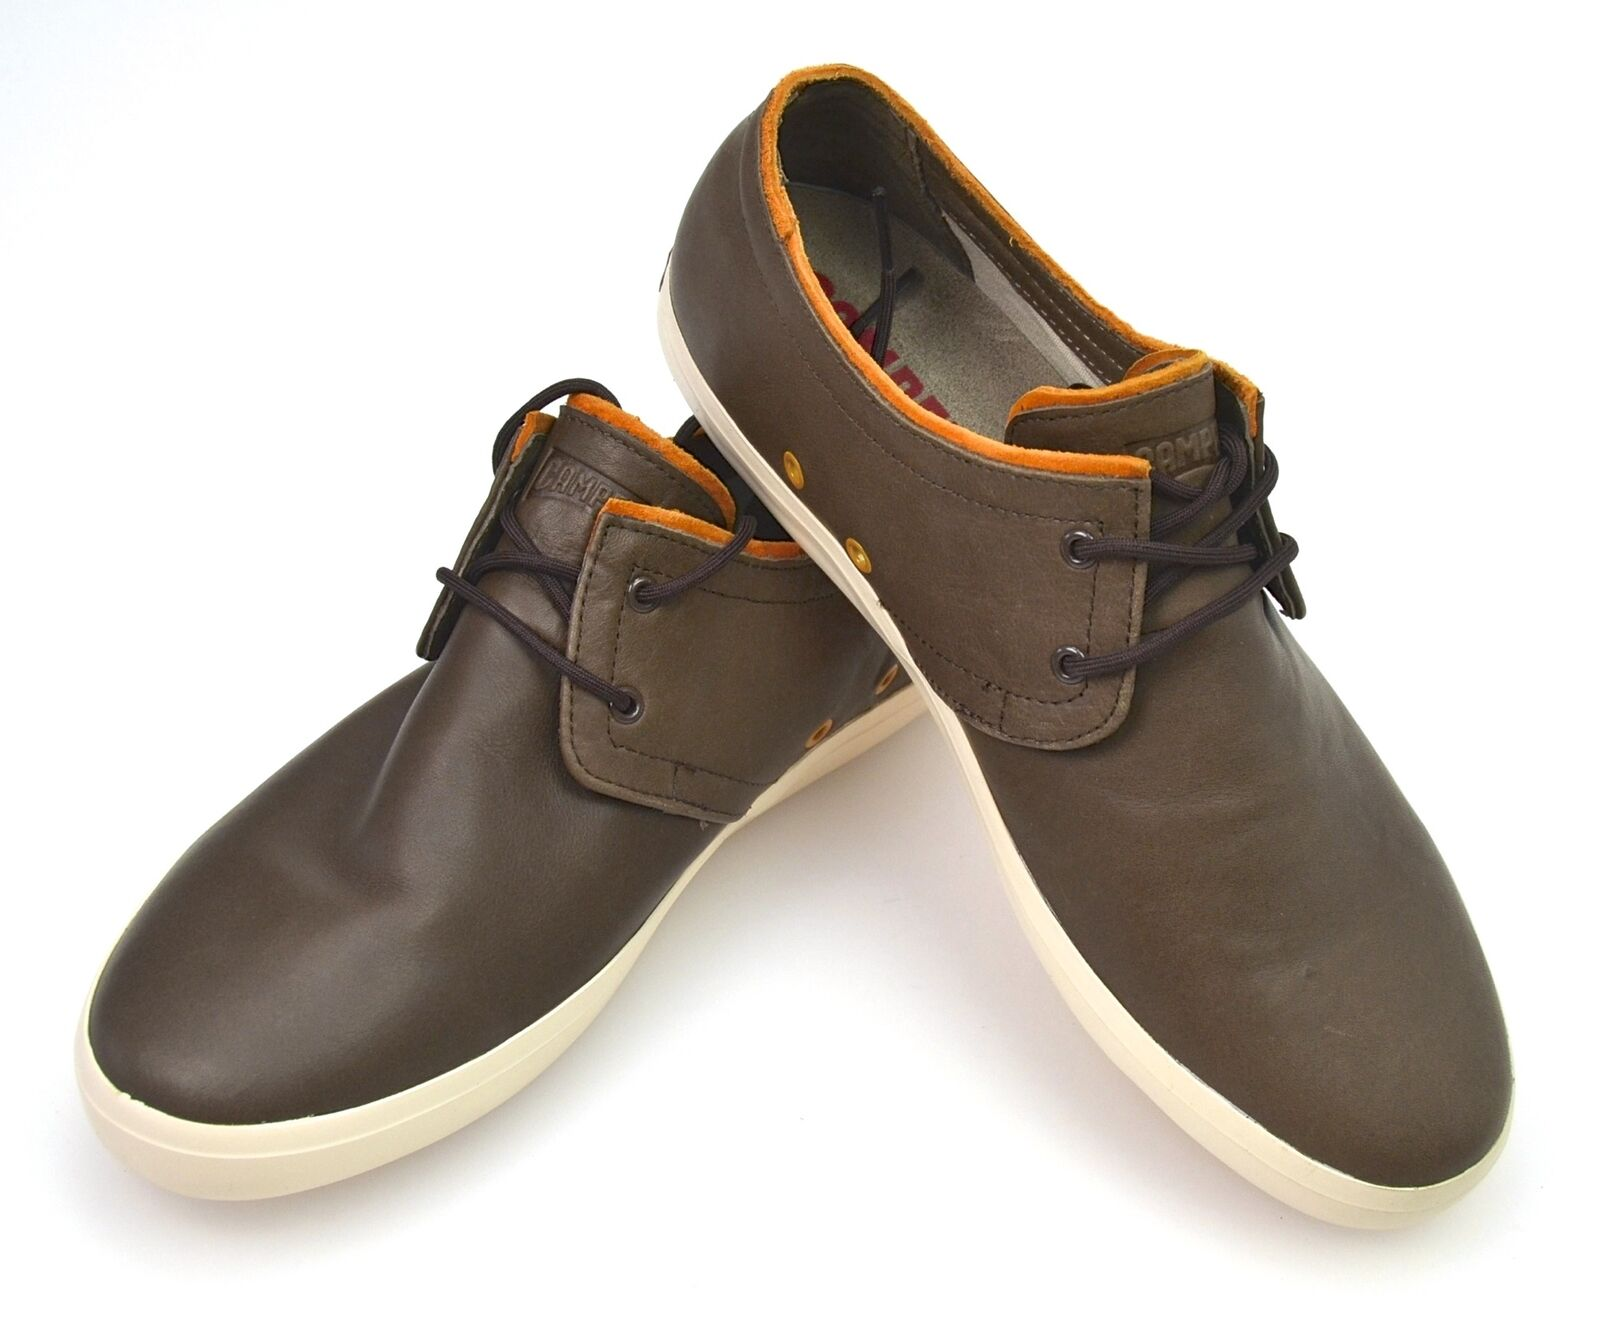 CAMPER MAN CASUAL FREE TIME SNEAKER SHOES LEATHER CODE 18832-002 DEFECT